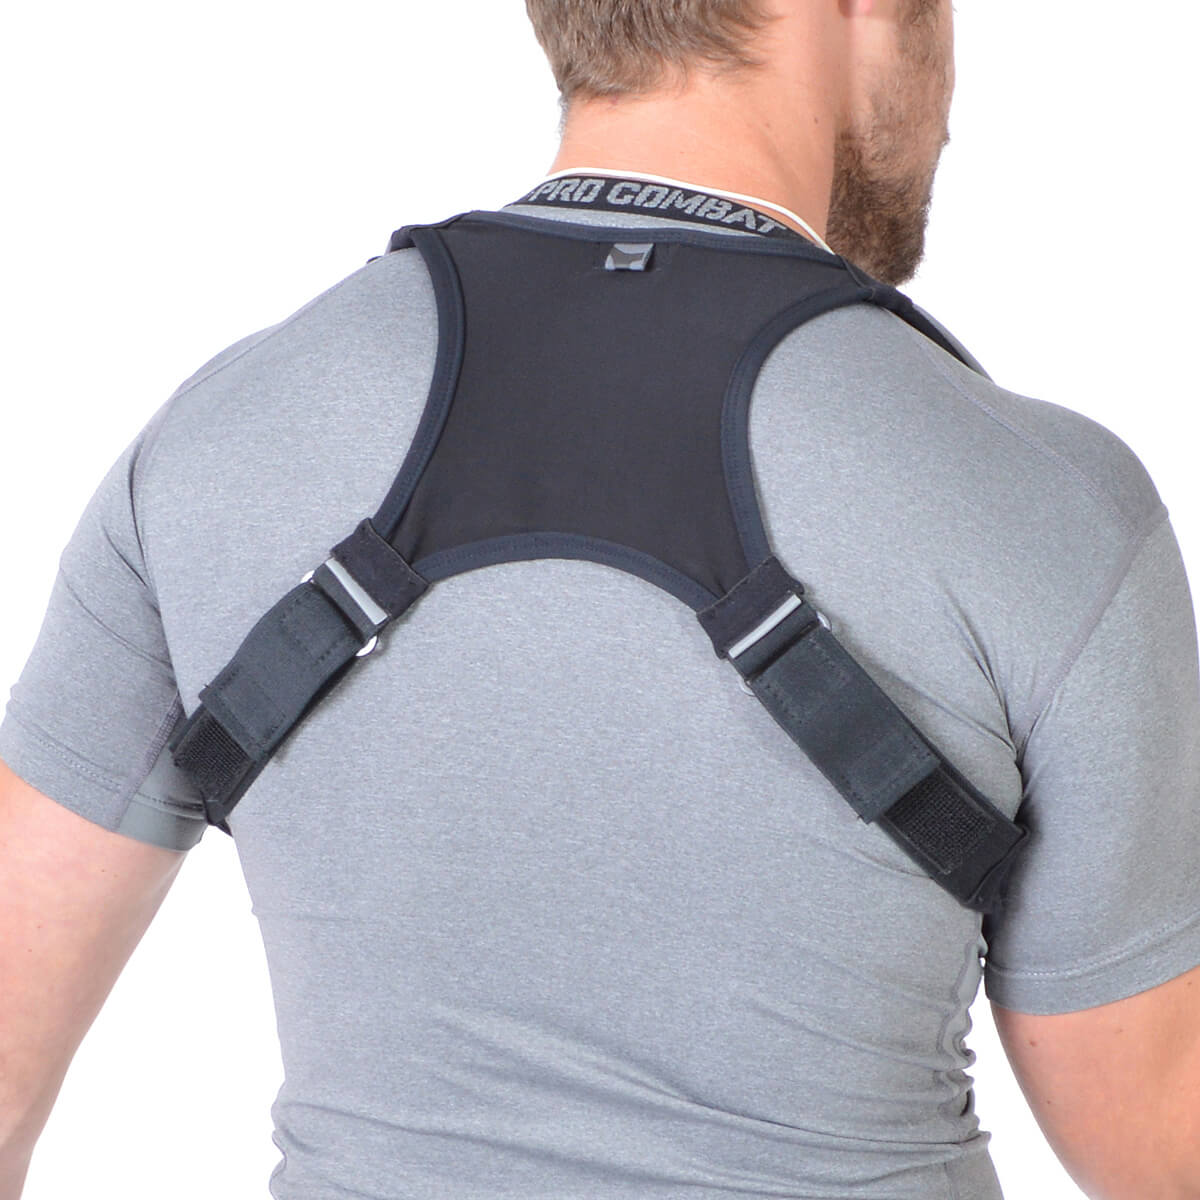 running vest for smartphones and co